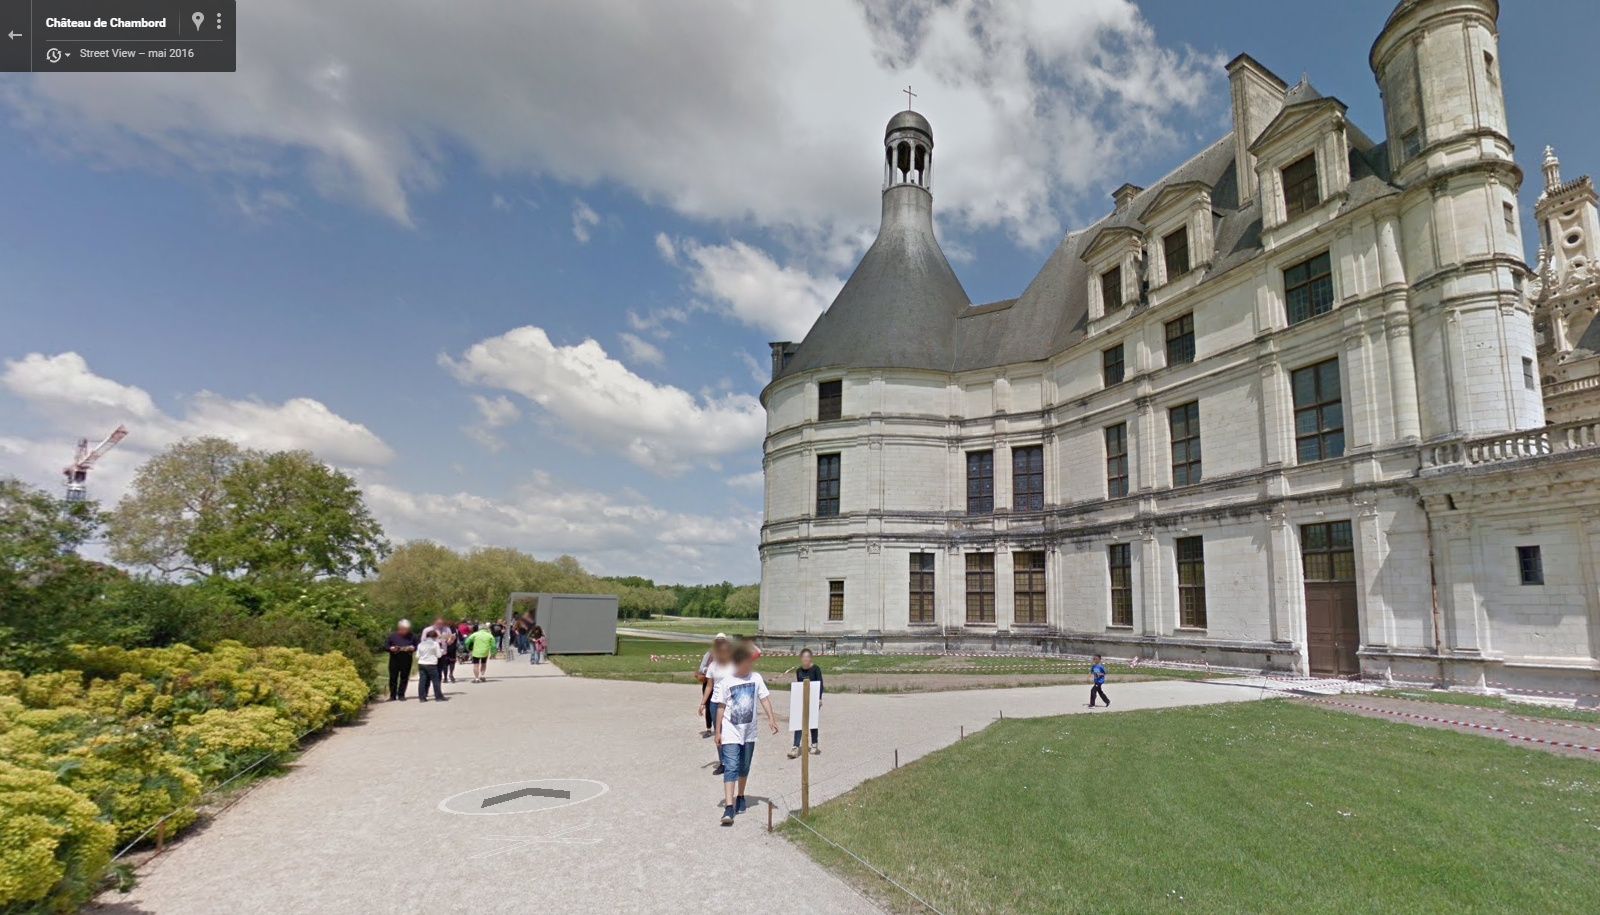 By clicking on the arrow, you can visit the alleys of the Château de Chambord.